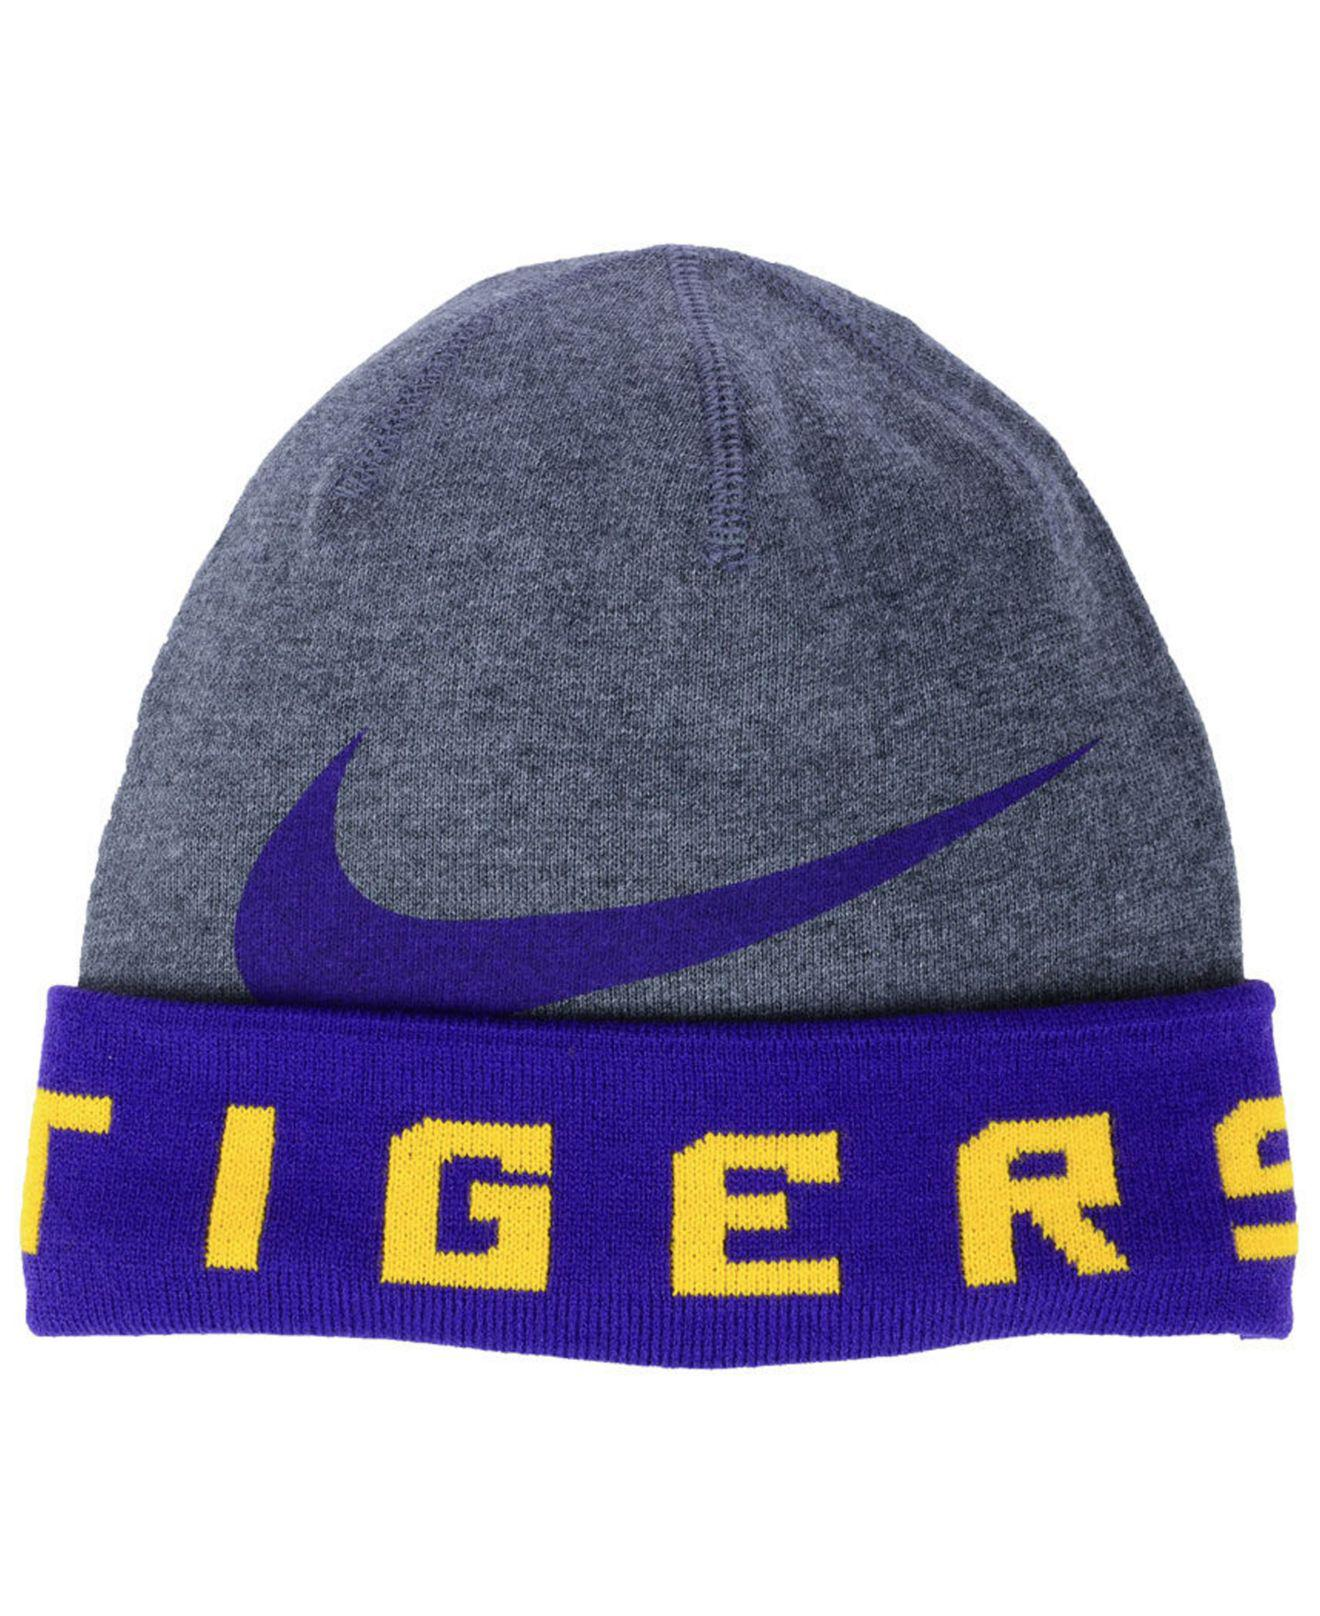 4e7ea111a53 Nike - Multicolor Lsu Tigers Training Beanie Knit Hat for Men - Lyst